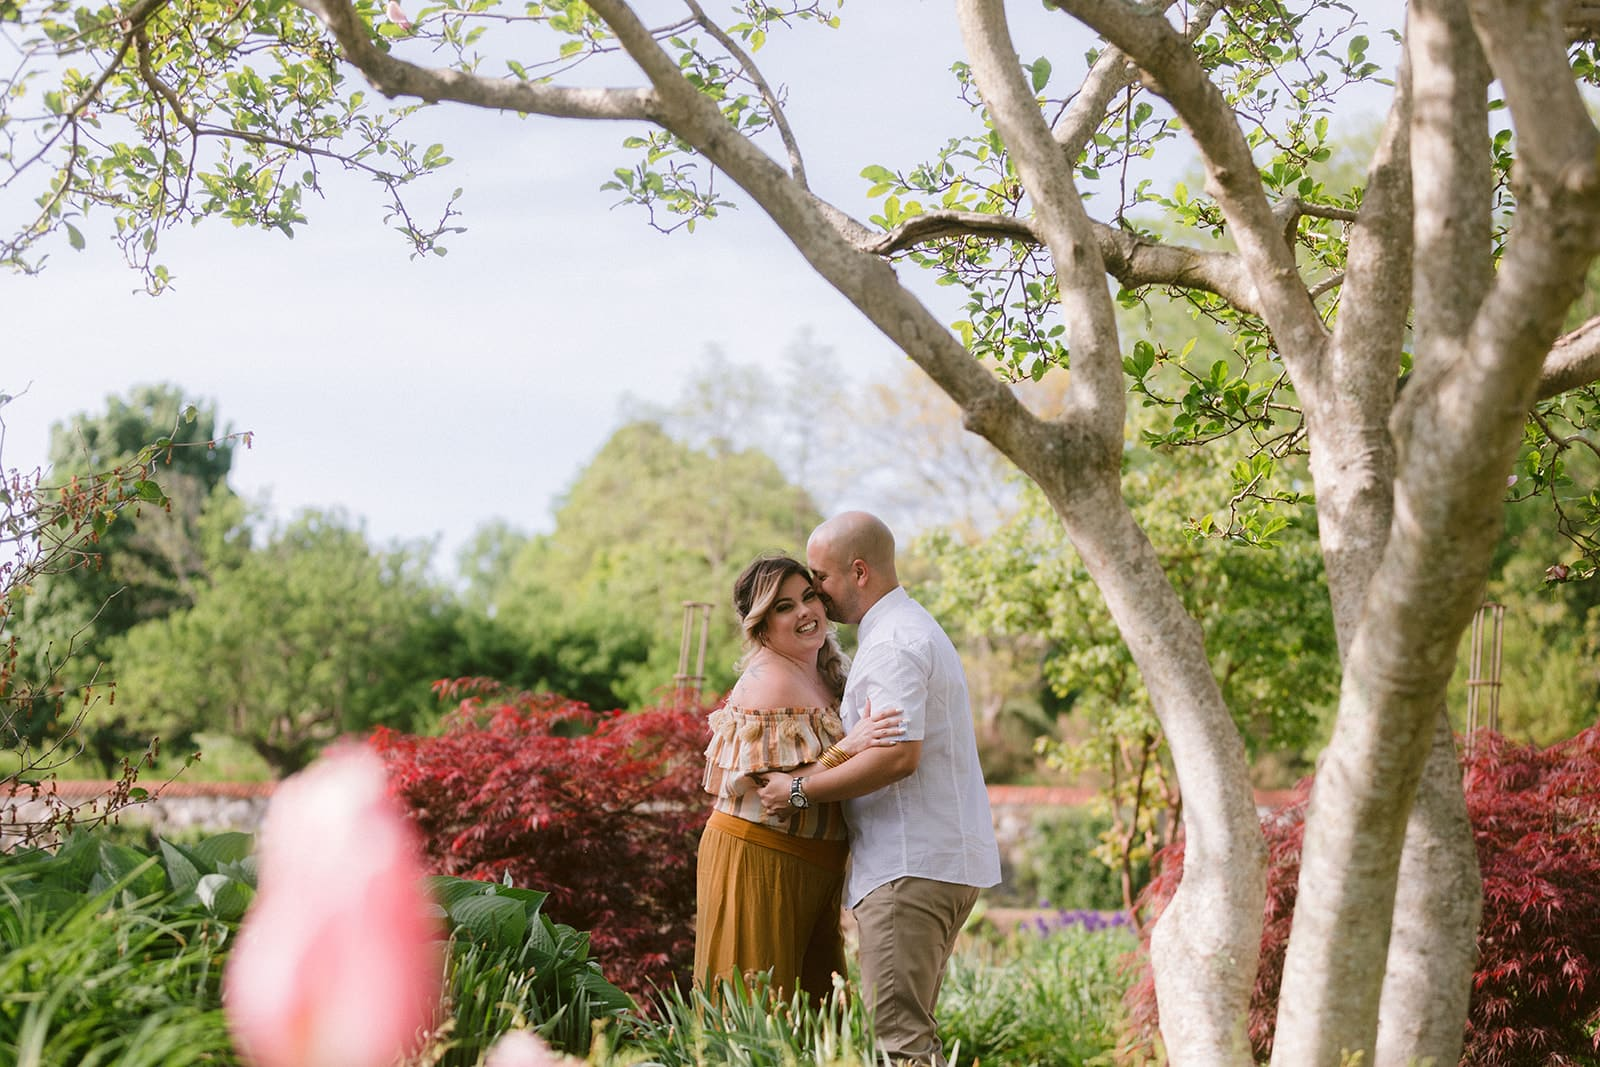 Newly engaged couple hugging one another laughing while standing outside on garden path